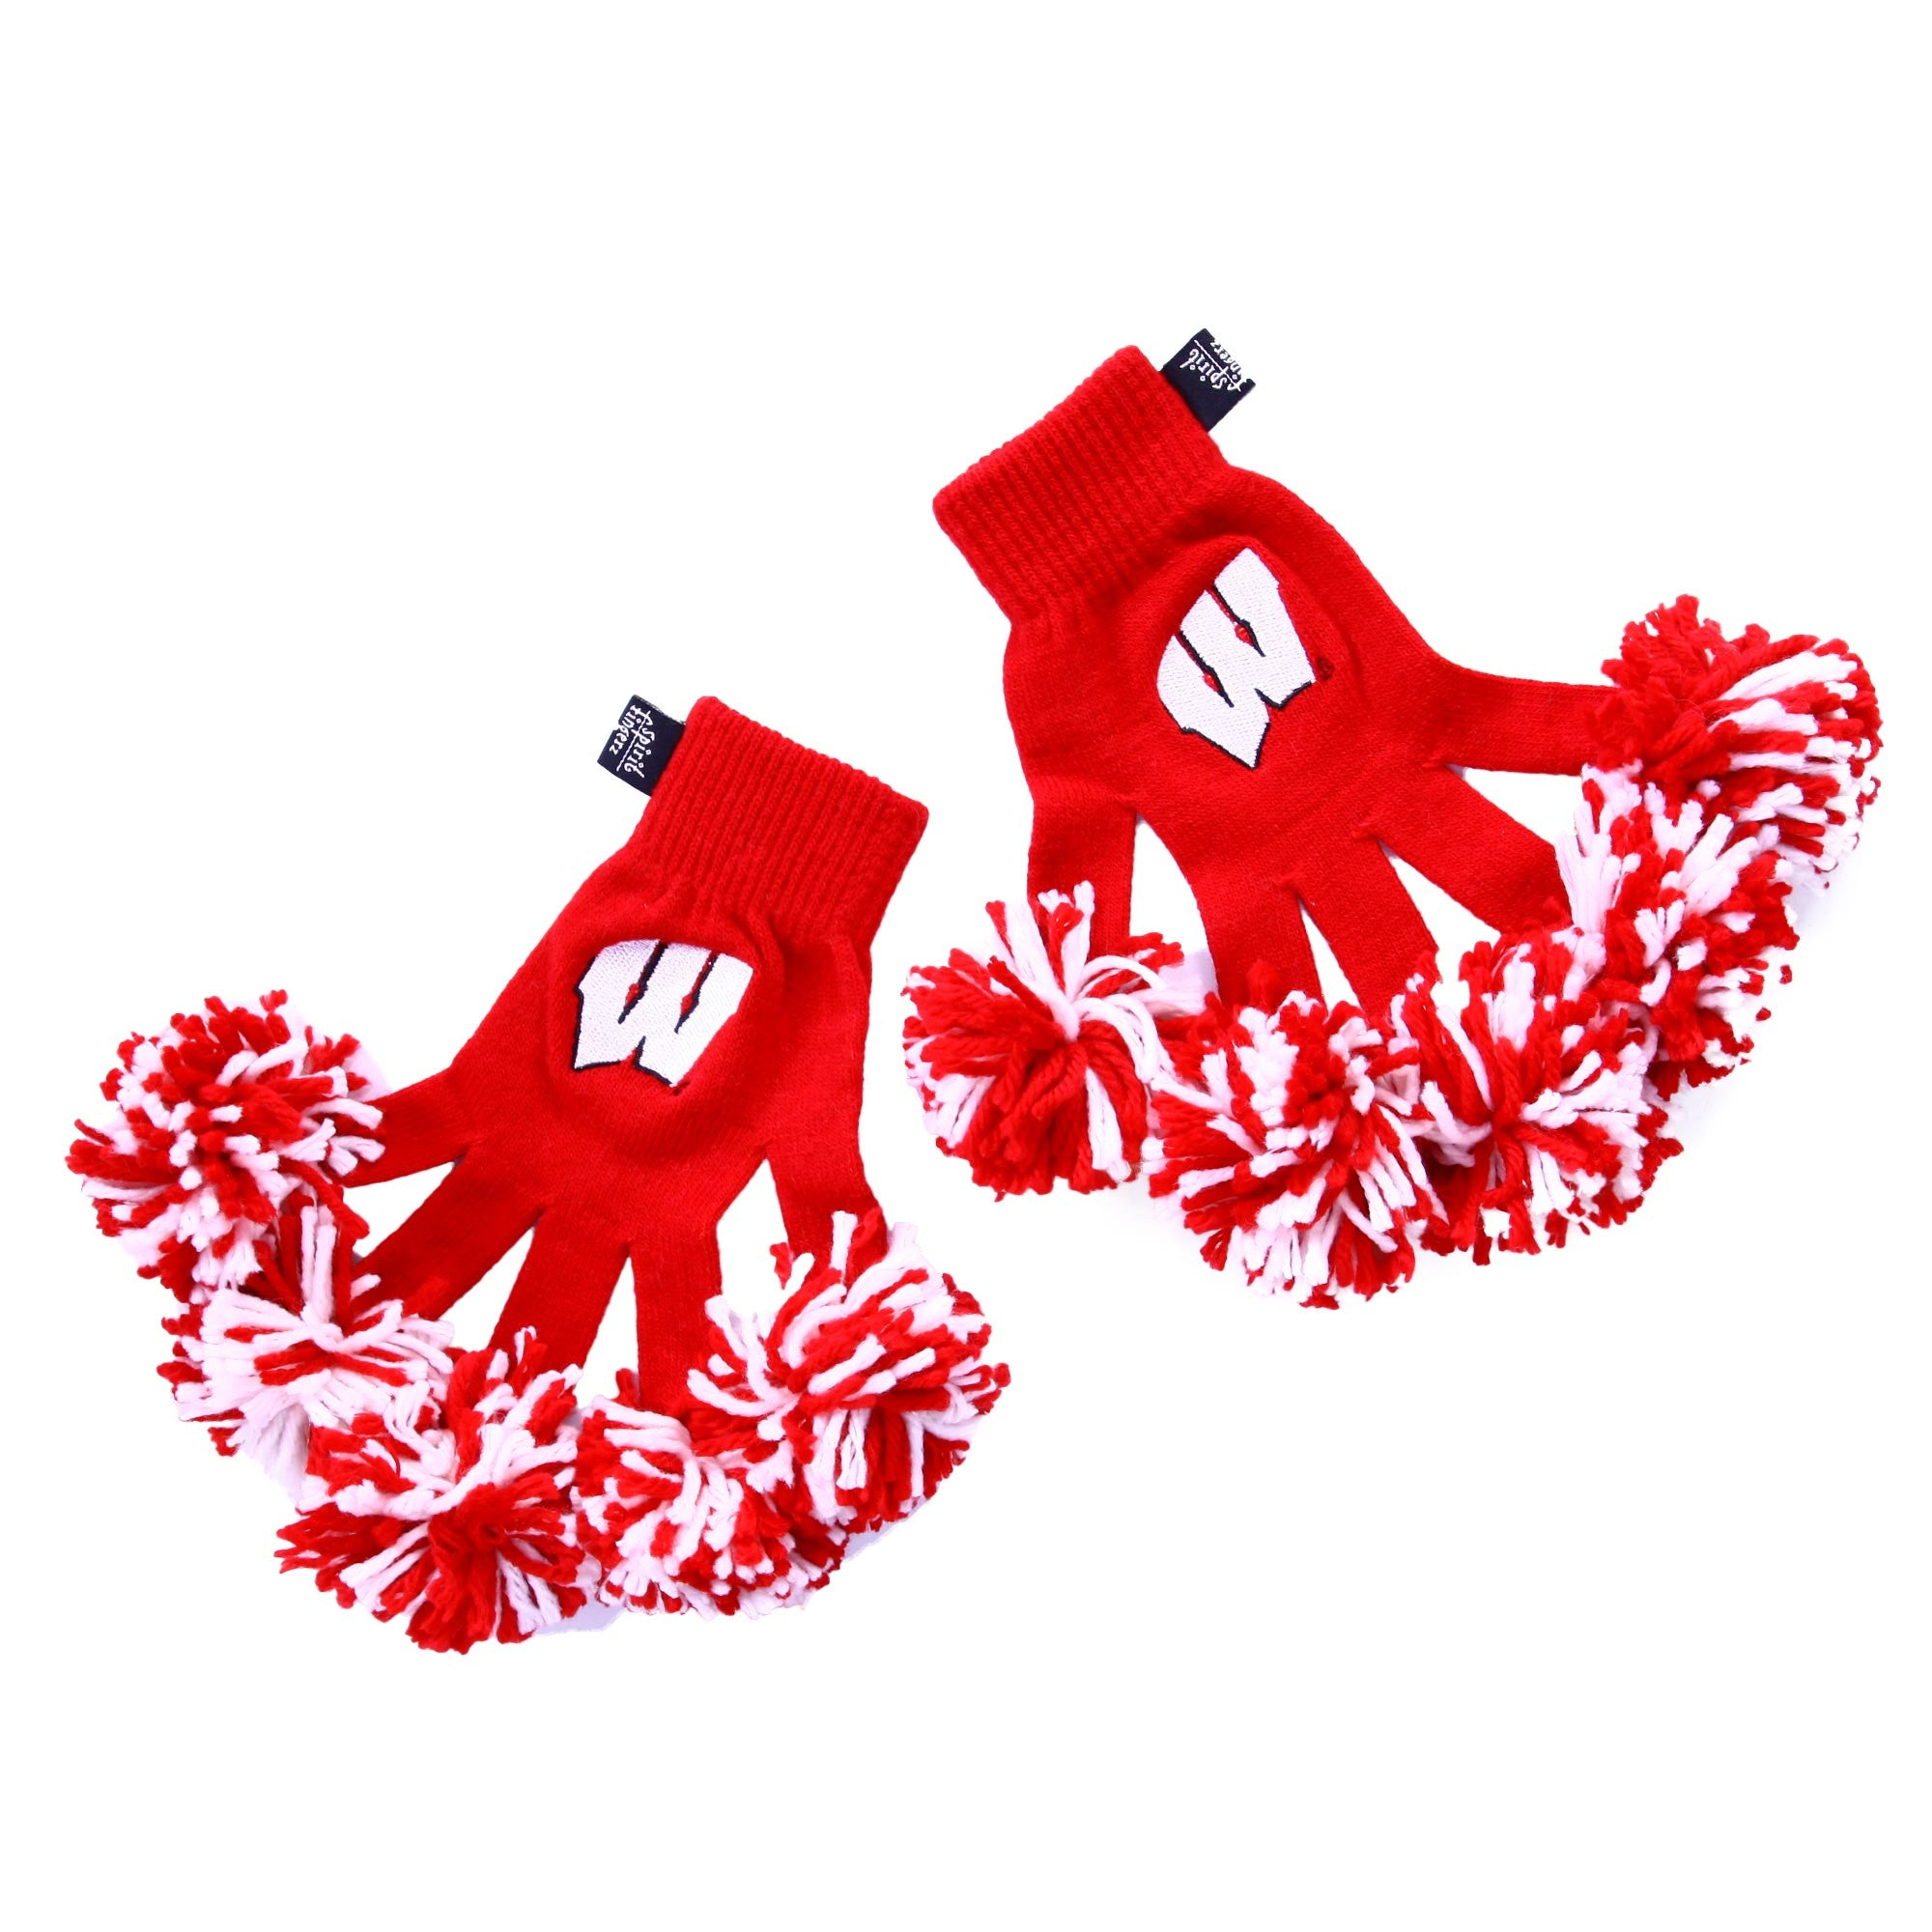 Wisconsin Badgers NCAA Spirit Fingerz Cheerleading Pom-Pom Gloves